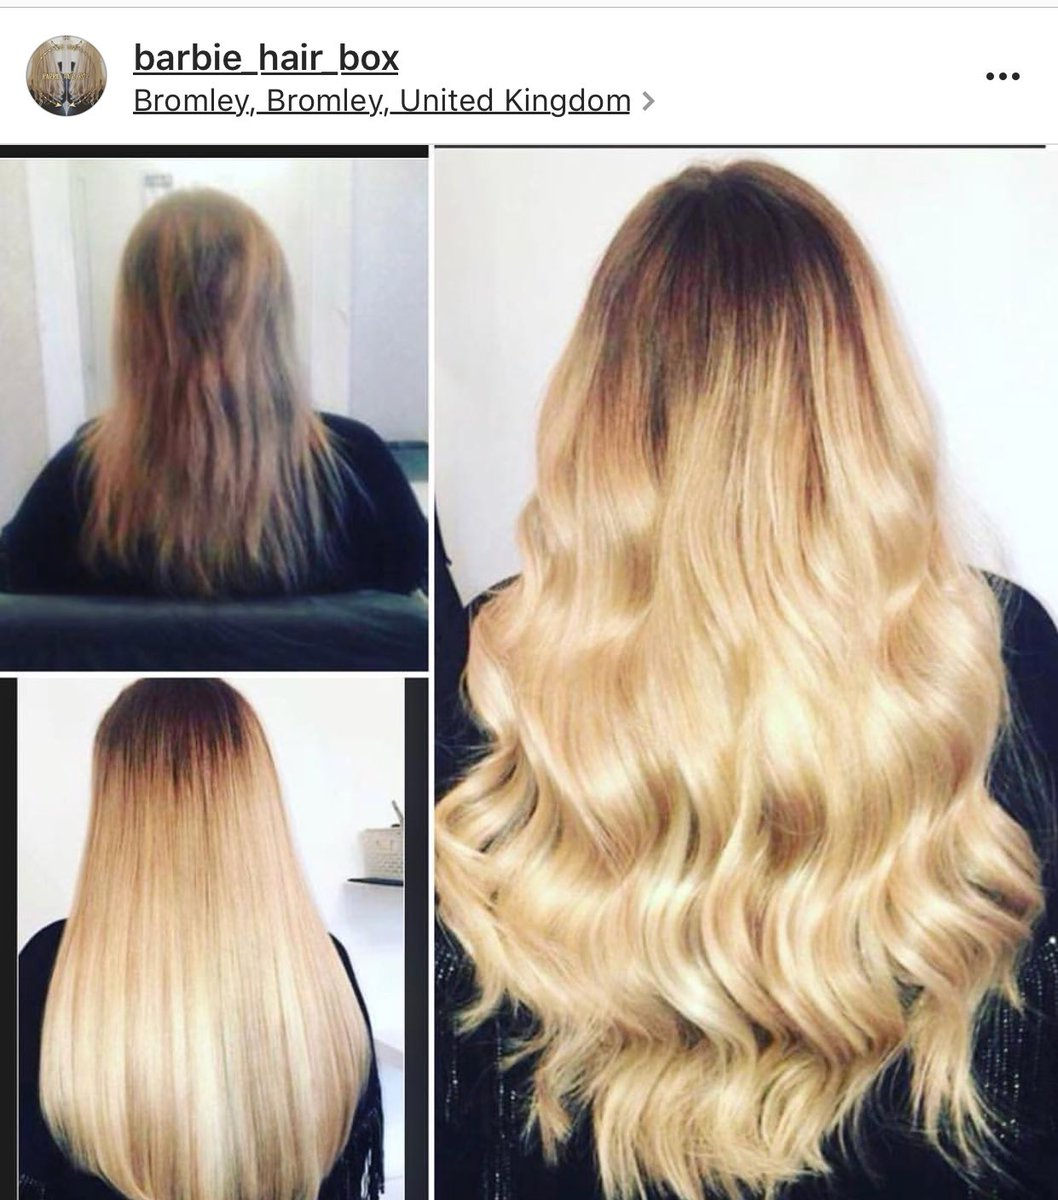 Barbiehairbox On Twitter Absolutely Love This Transformation